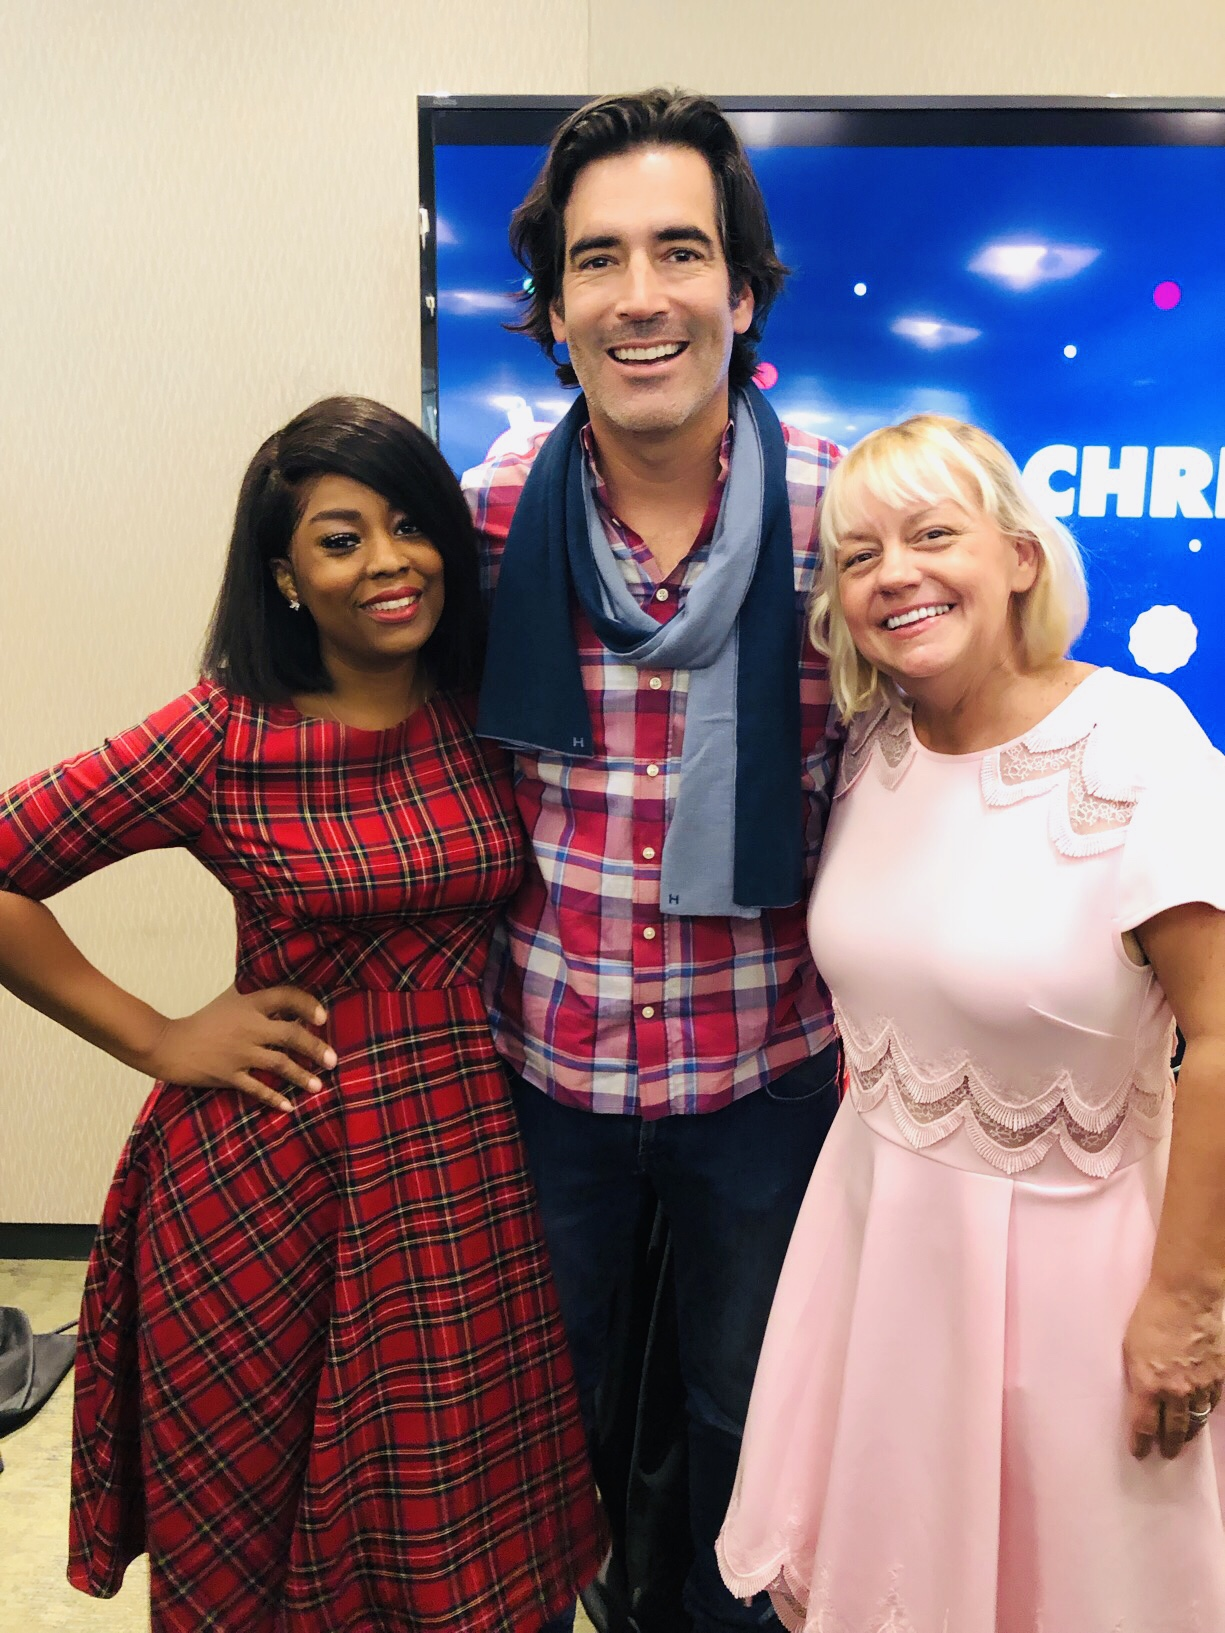 """A Sit Down With Hosts Sherry Yard & Carter Oosterhouse From ABC's 25 DAYS OF CHRISTMAS """"The Great Christmas Light Fight"""" and """"The Great American Baking Show: Holiday Edition"""""""